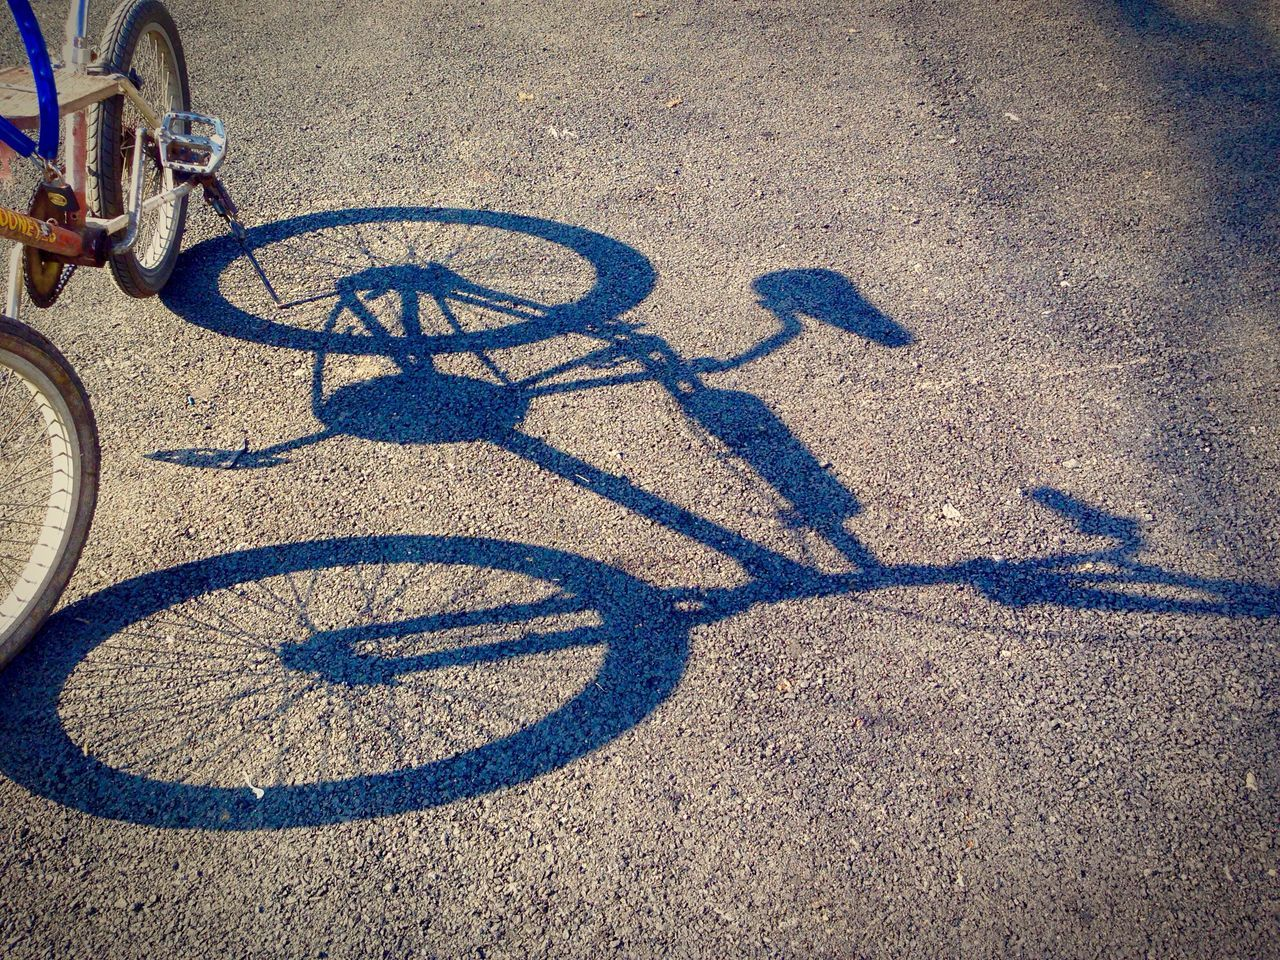 bicycle, transportation, outdoors, shadow, day, high angle view, street, no people, road, sunlight